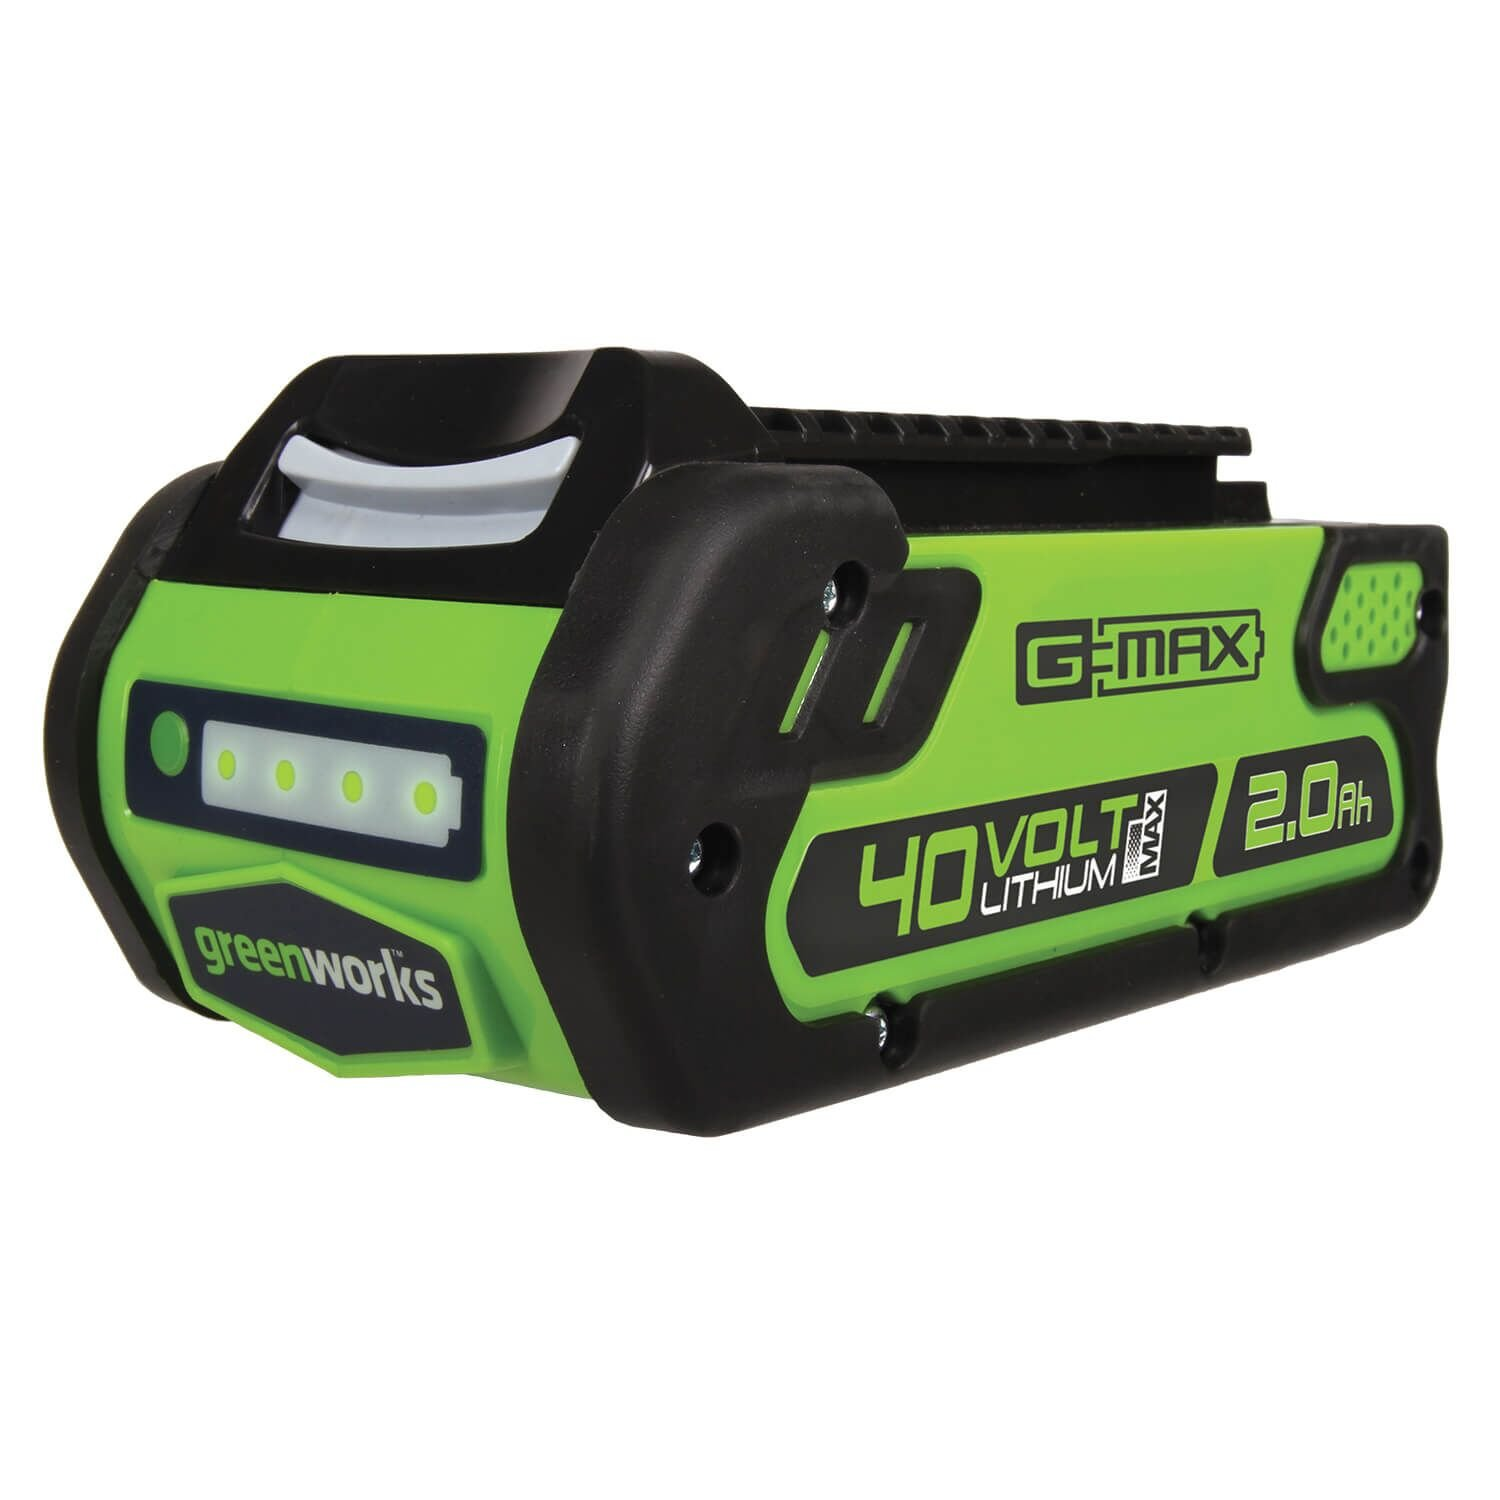 Greenworks 40V 2.0 AH Lithium Ion Battery 29462 by Greenworks